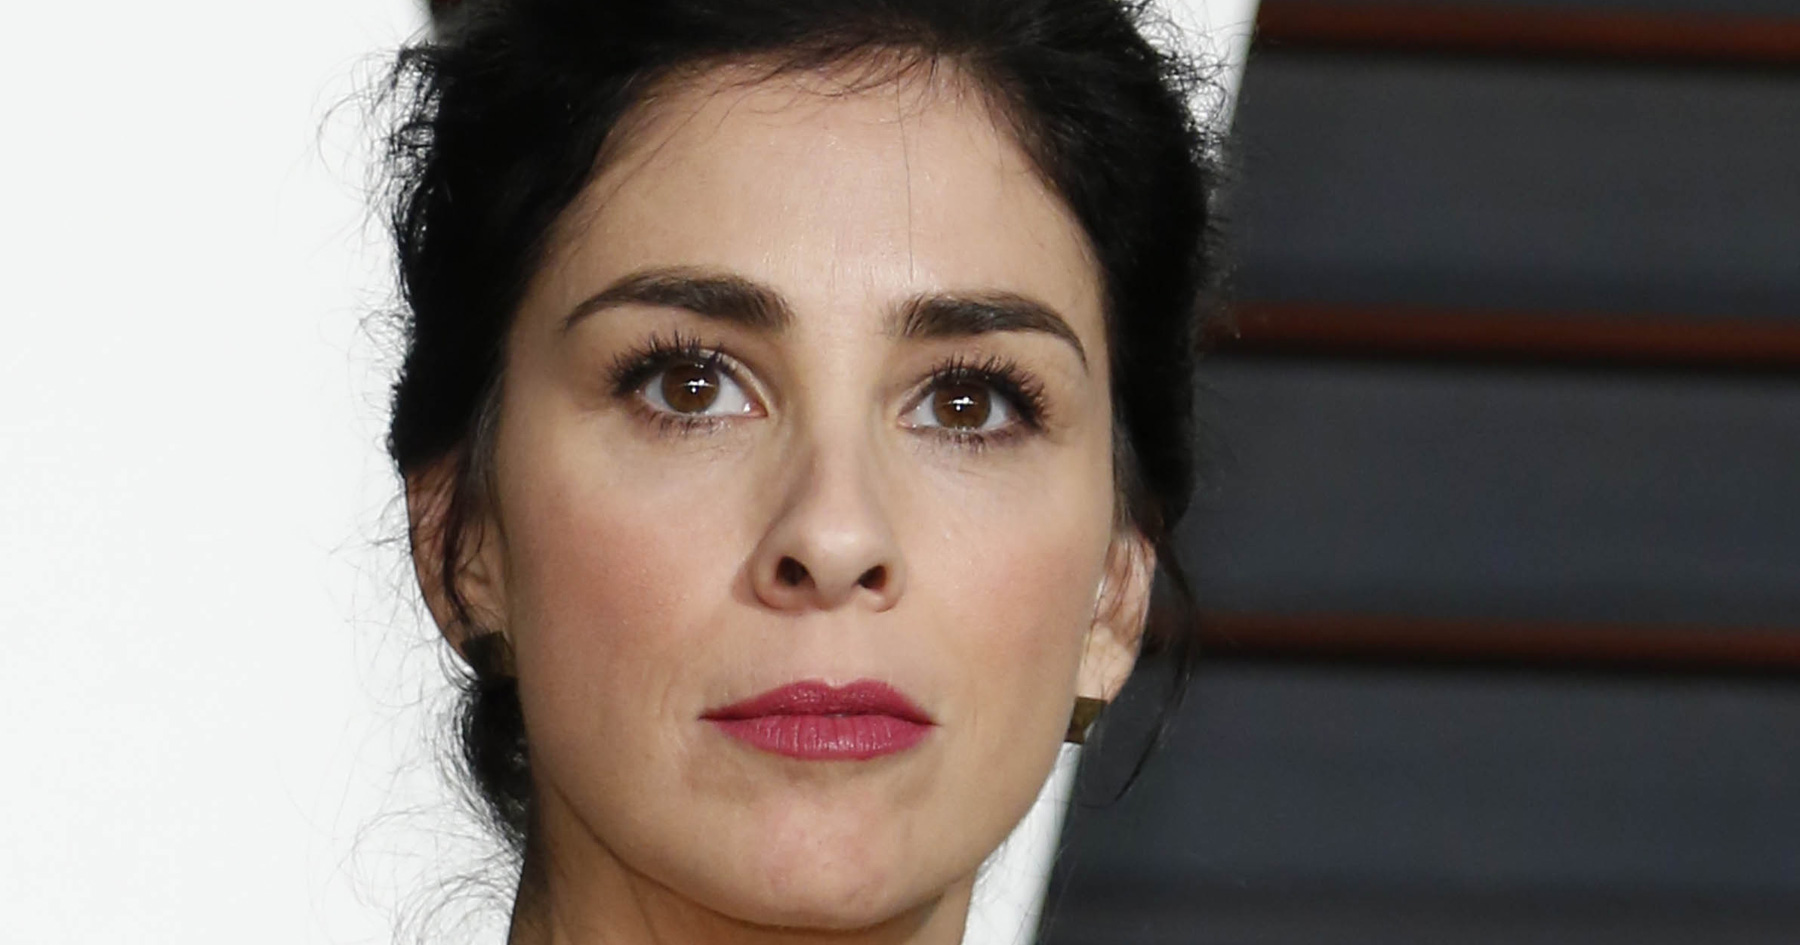 Sarah Silverman Just Perfectly Described What Depression Feels Like